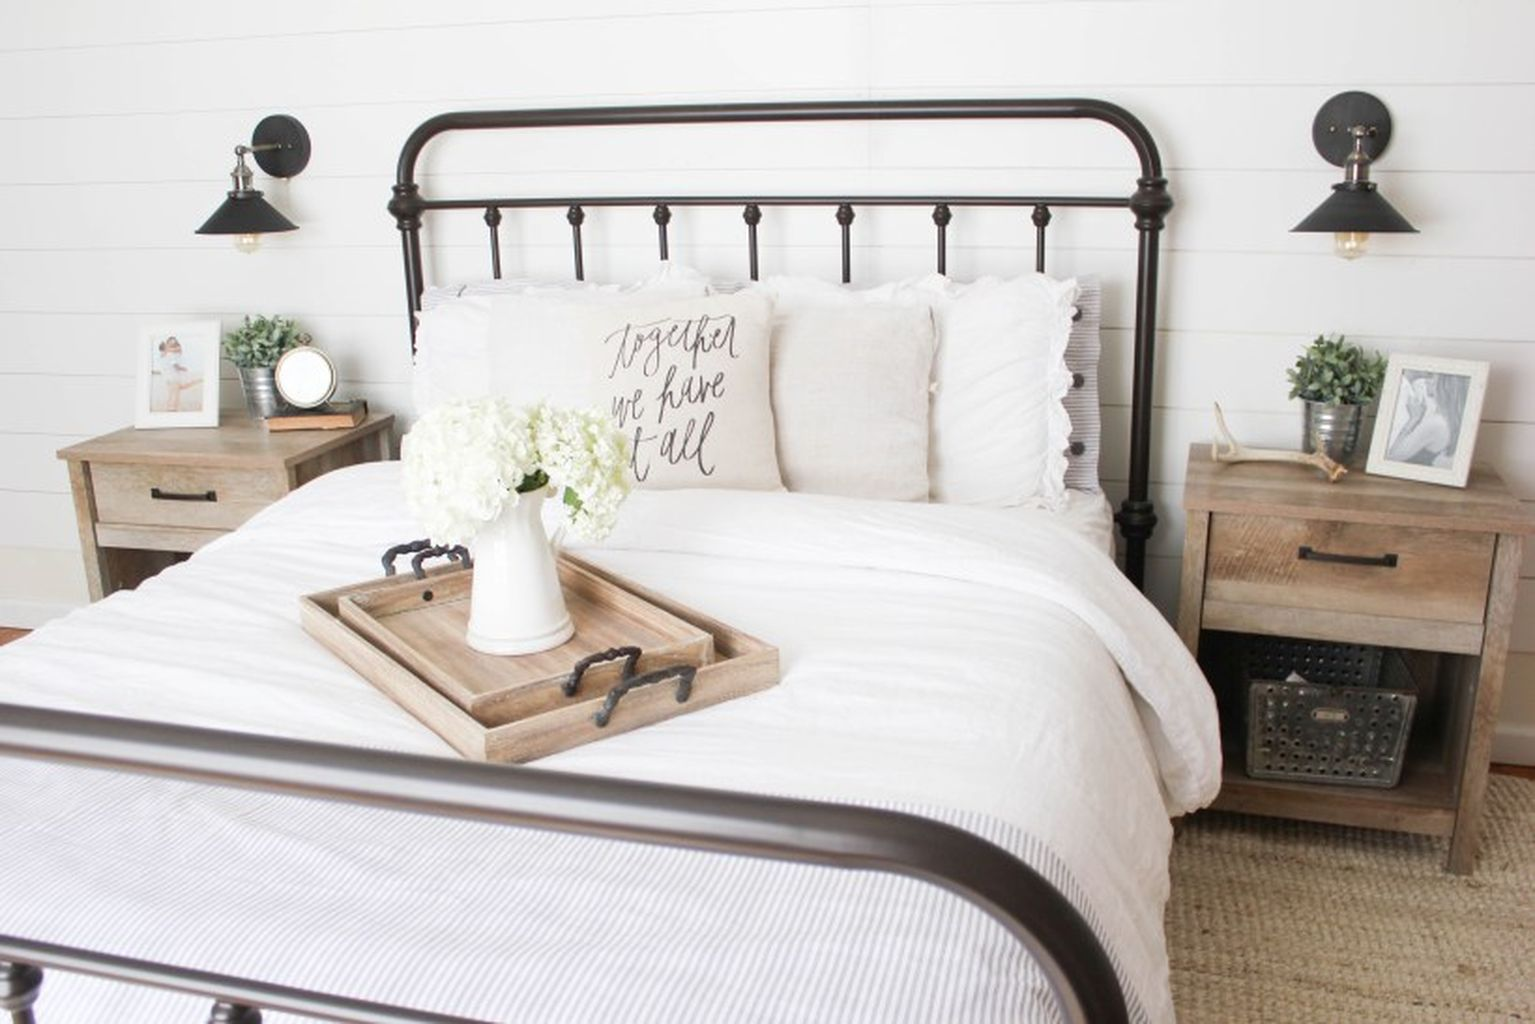 Master bedroom decorating ideas 2018   Country Rustic Farmhouse Master Bedroom Decorating Ideas